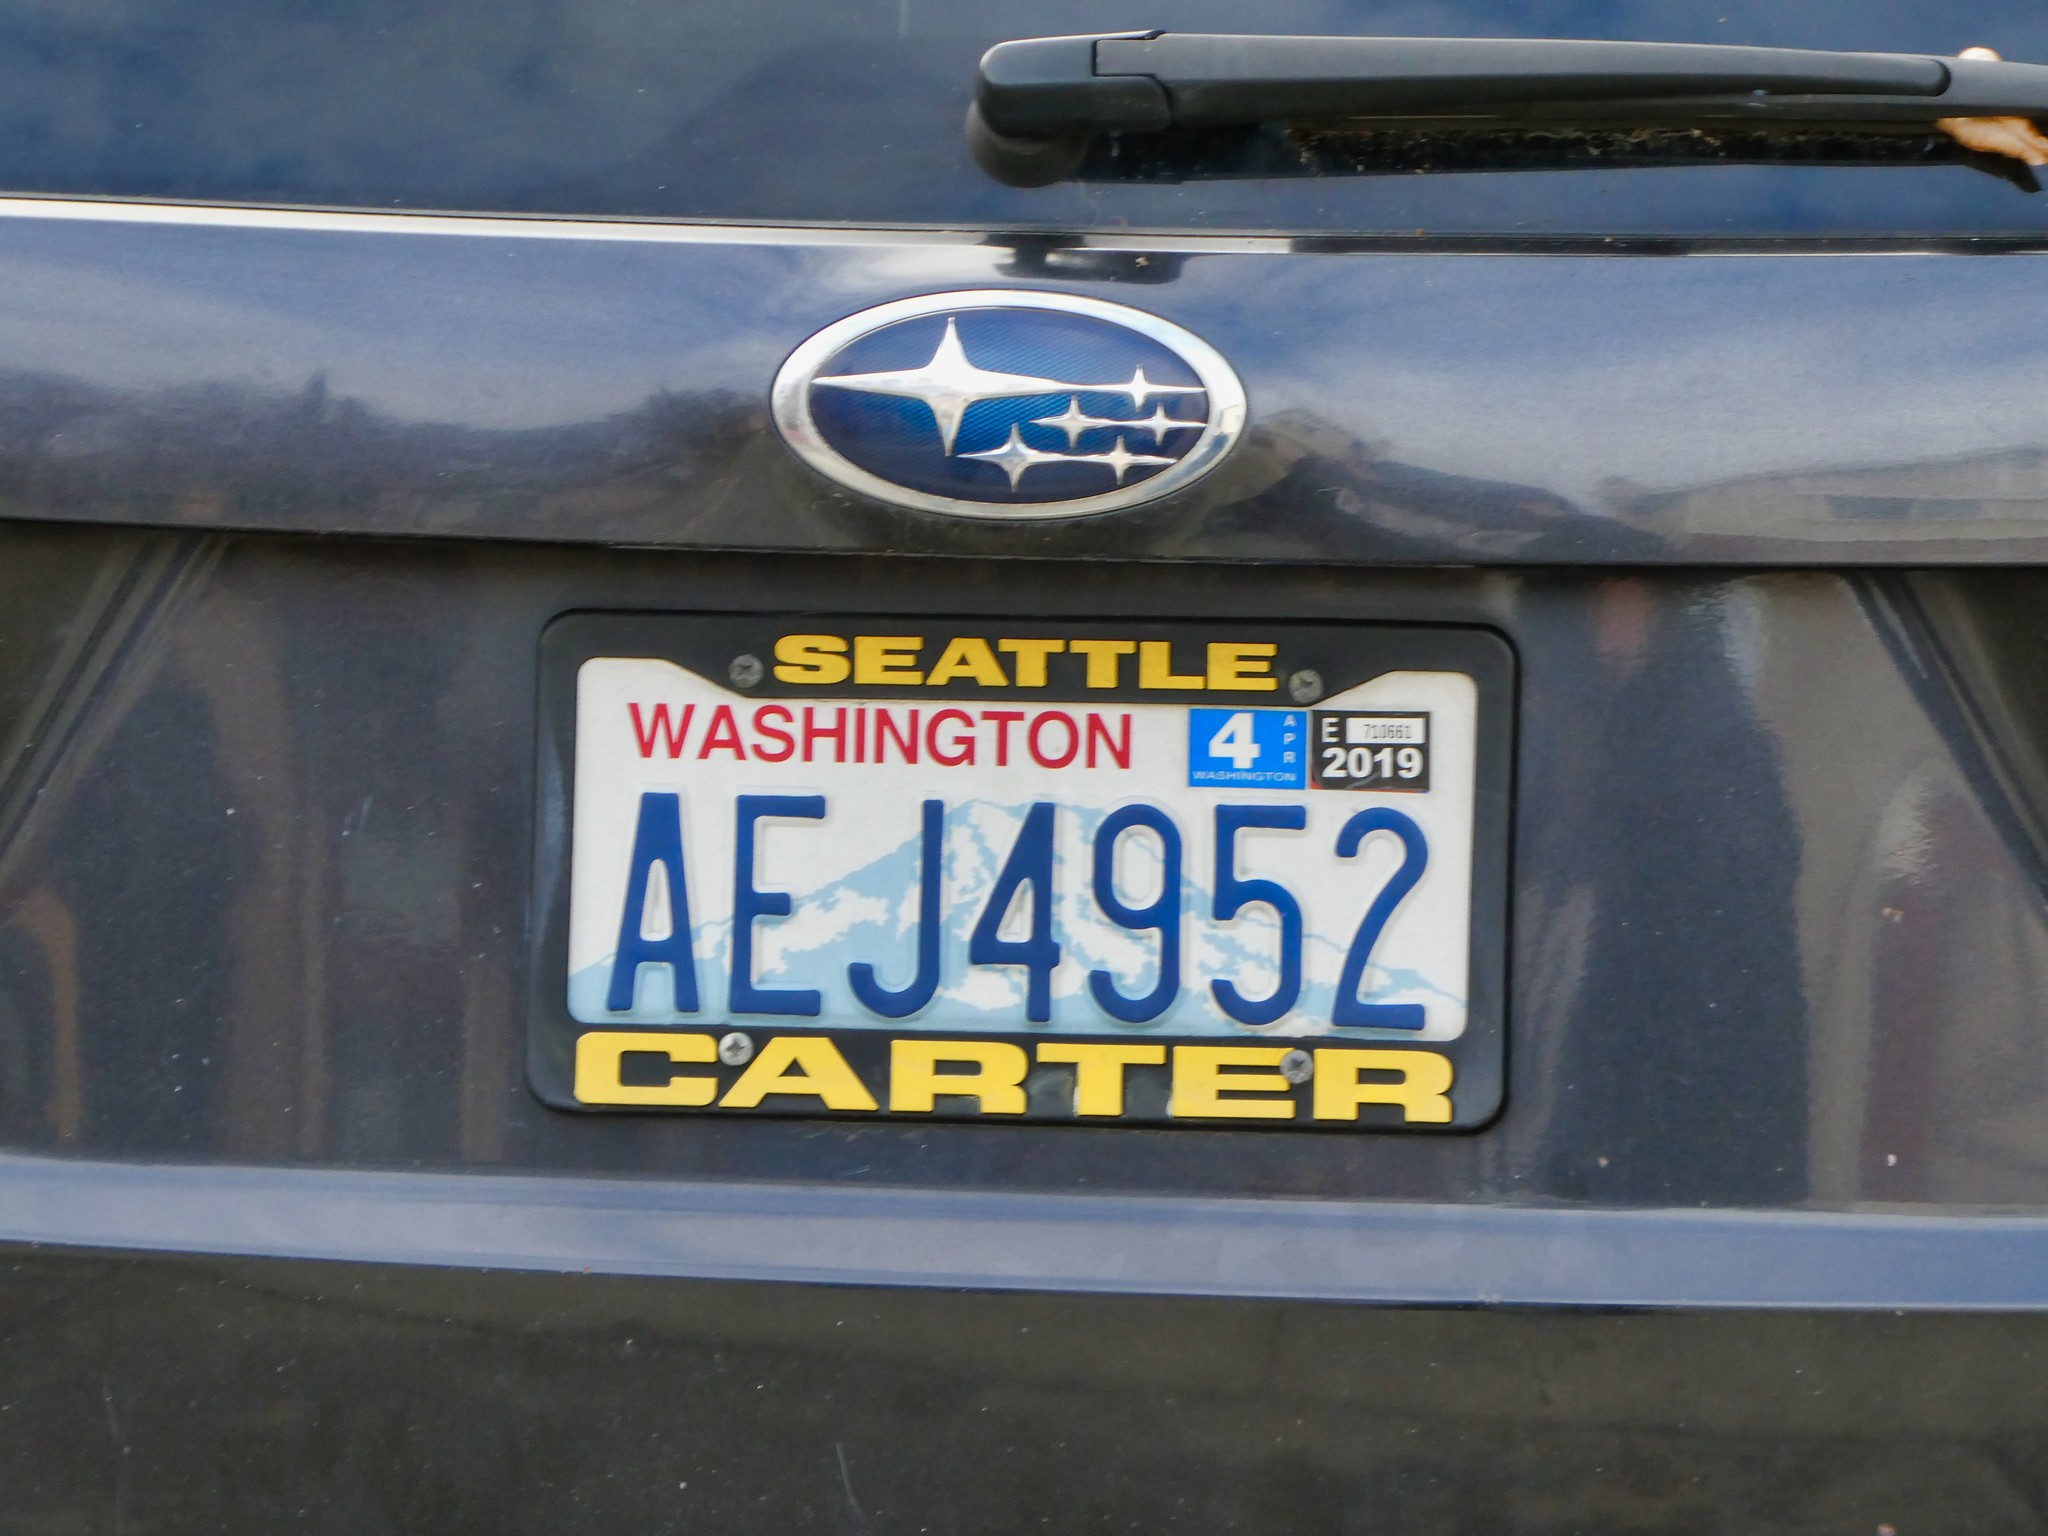 2019-02-28 - Street Photography - Cars - Personalized License Plates